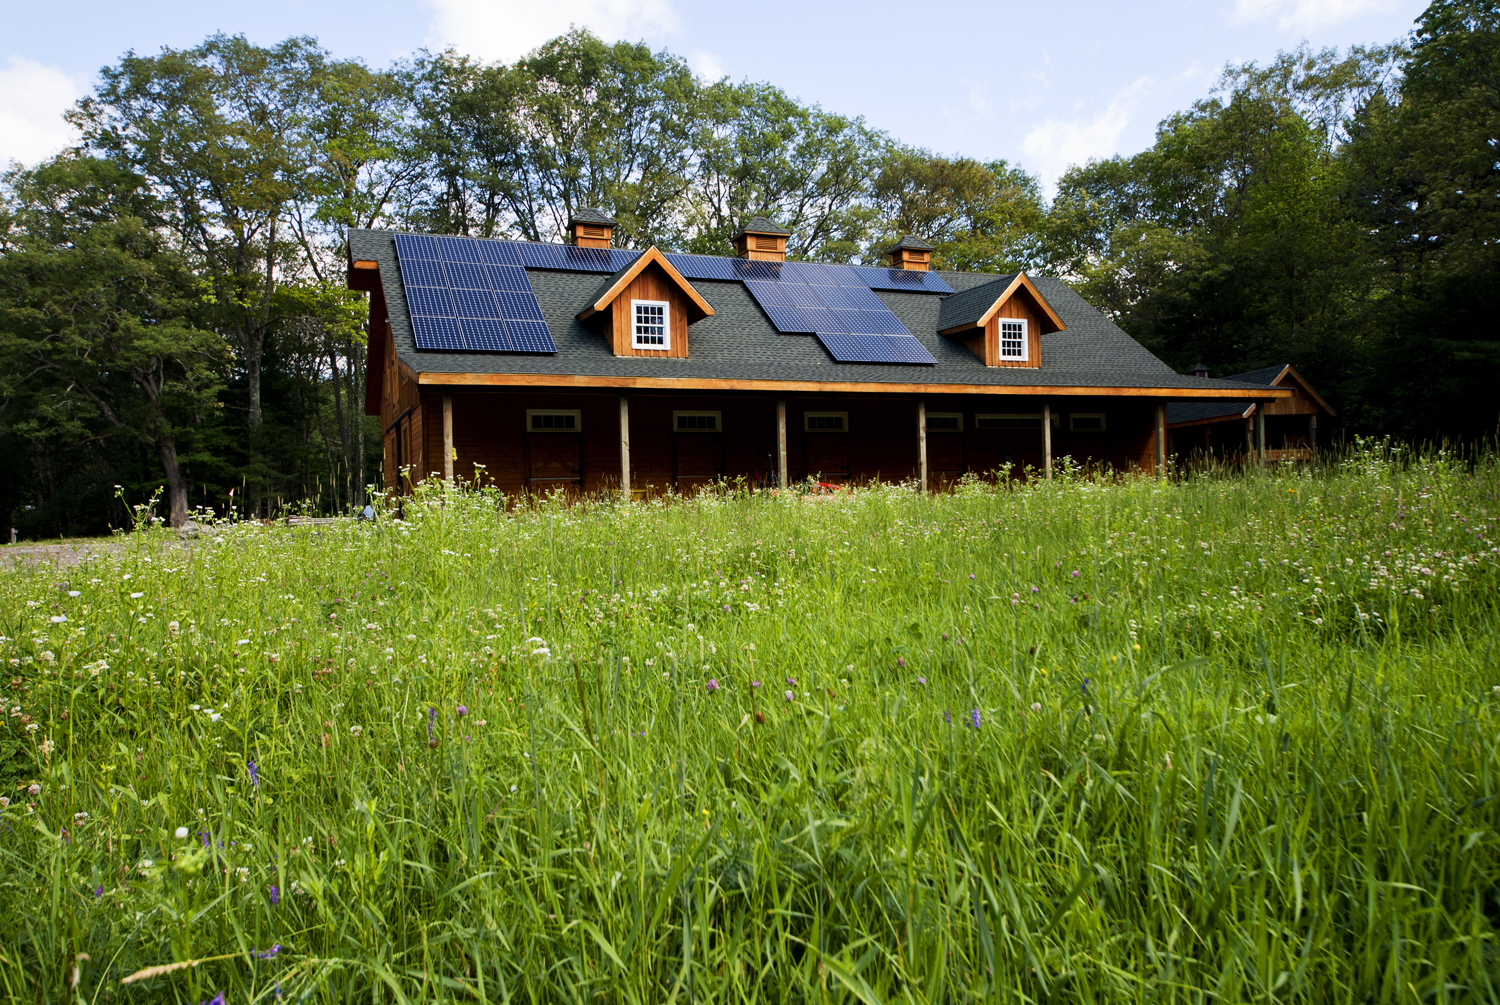 The Lincoln Net Zero site had an existing barn on a corner of the property that was unobstructed by trees and faced due south for optimal solar gain.